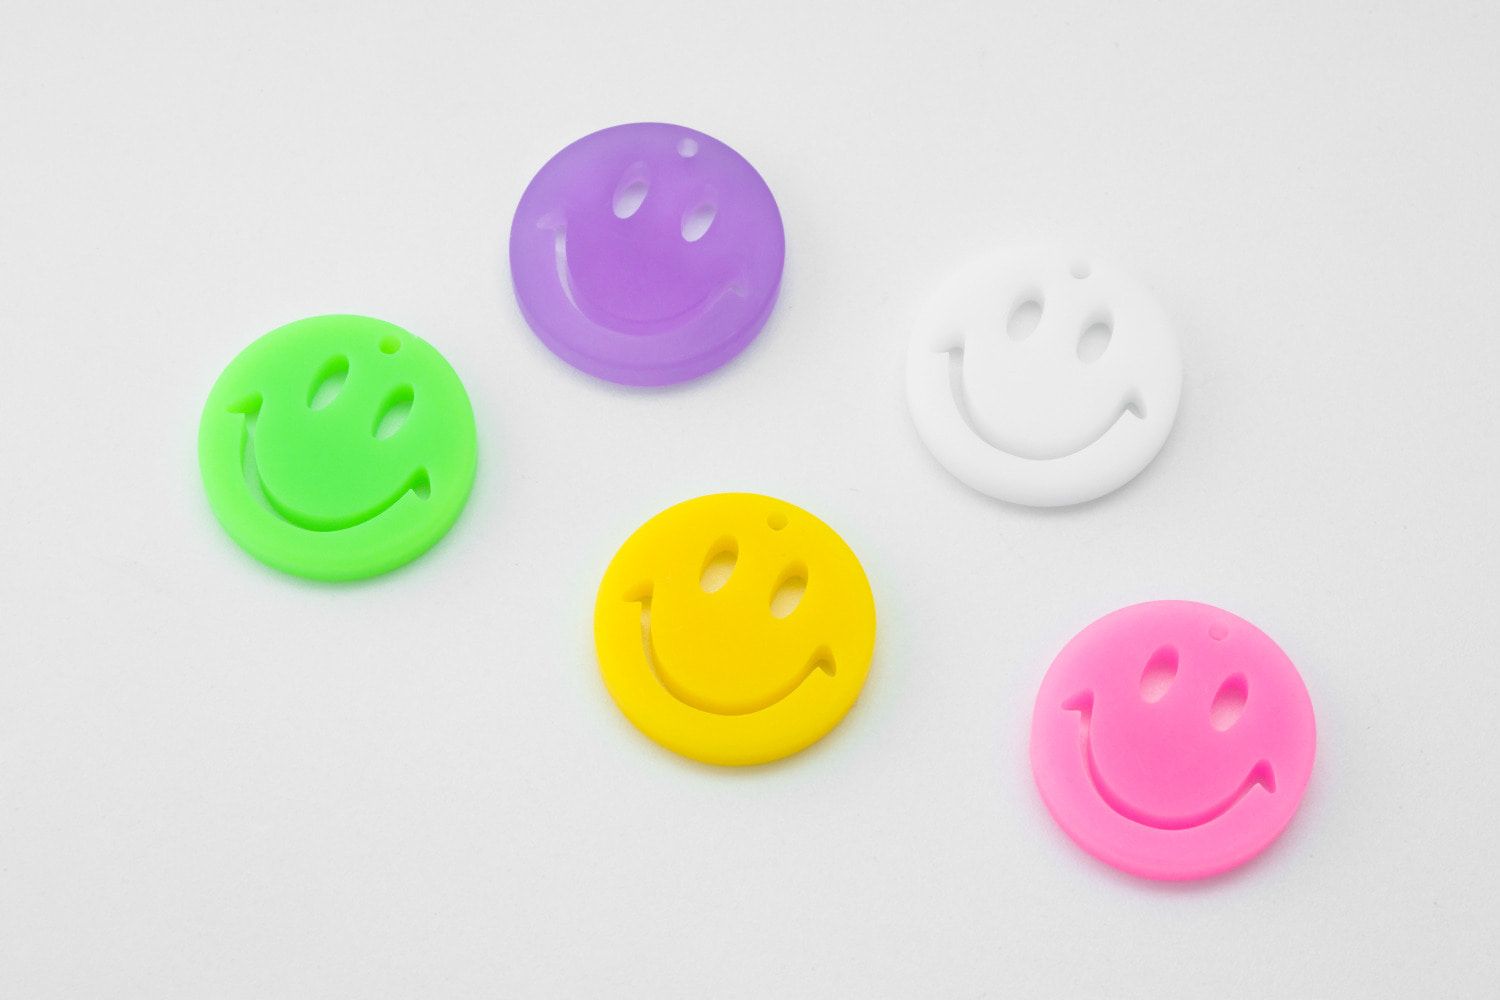 [V5-VC3] Large smile charm, Acrylic, Smiley face, Smile pendant, Necklace making, Unique charm, 2 pcs